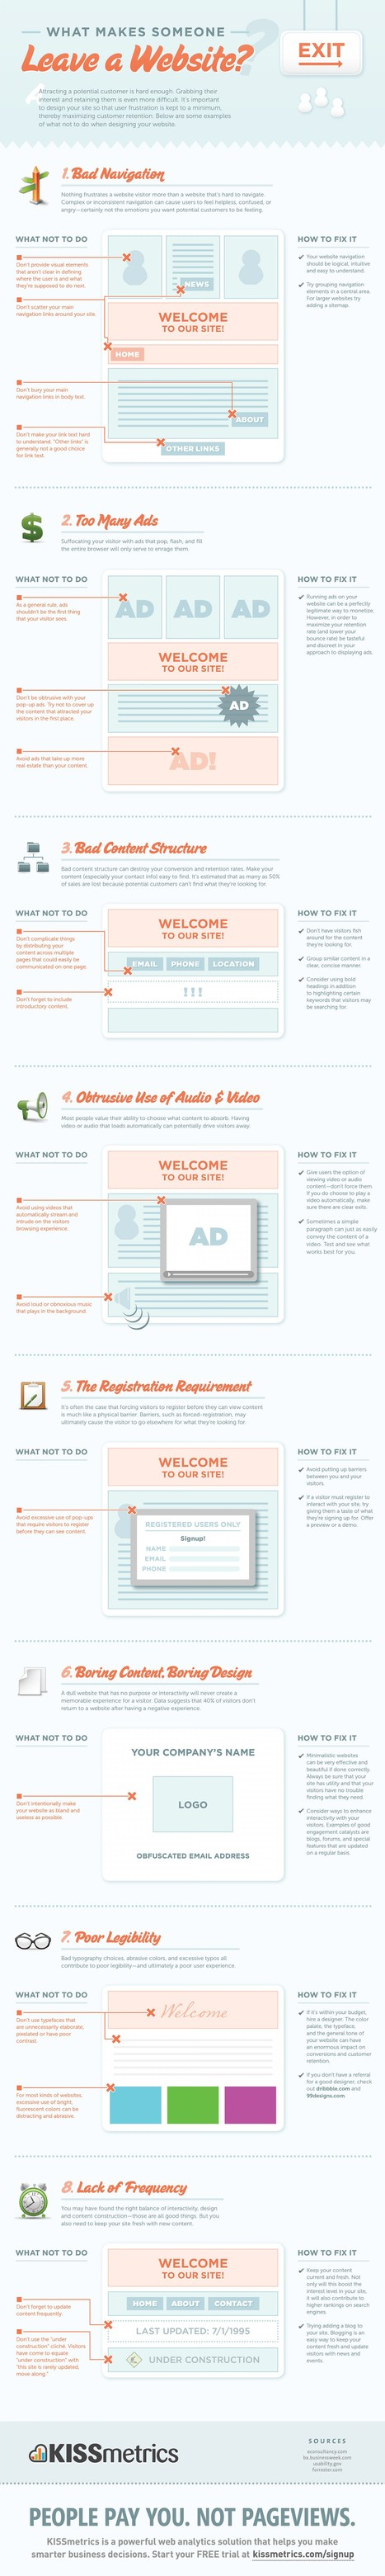 Avoid These 8 Deadly Sins of Site Design | Infographic | teaching with technology | Scoop.it